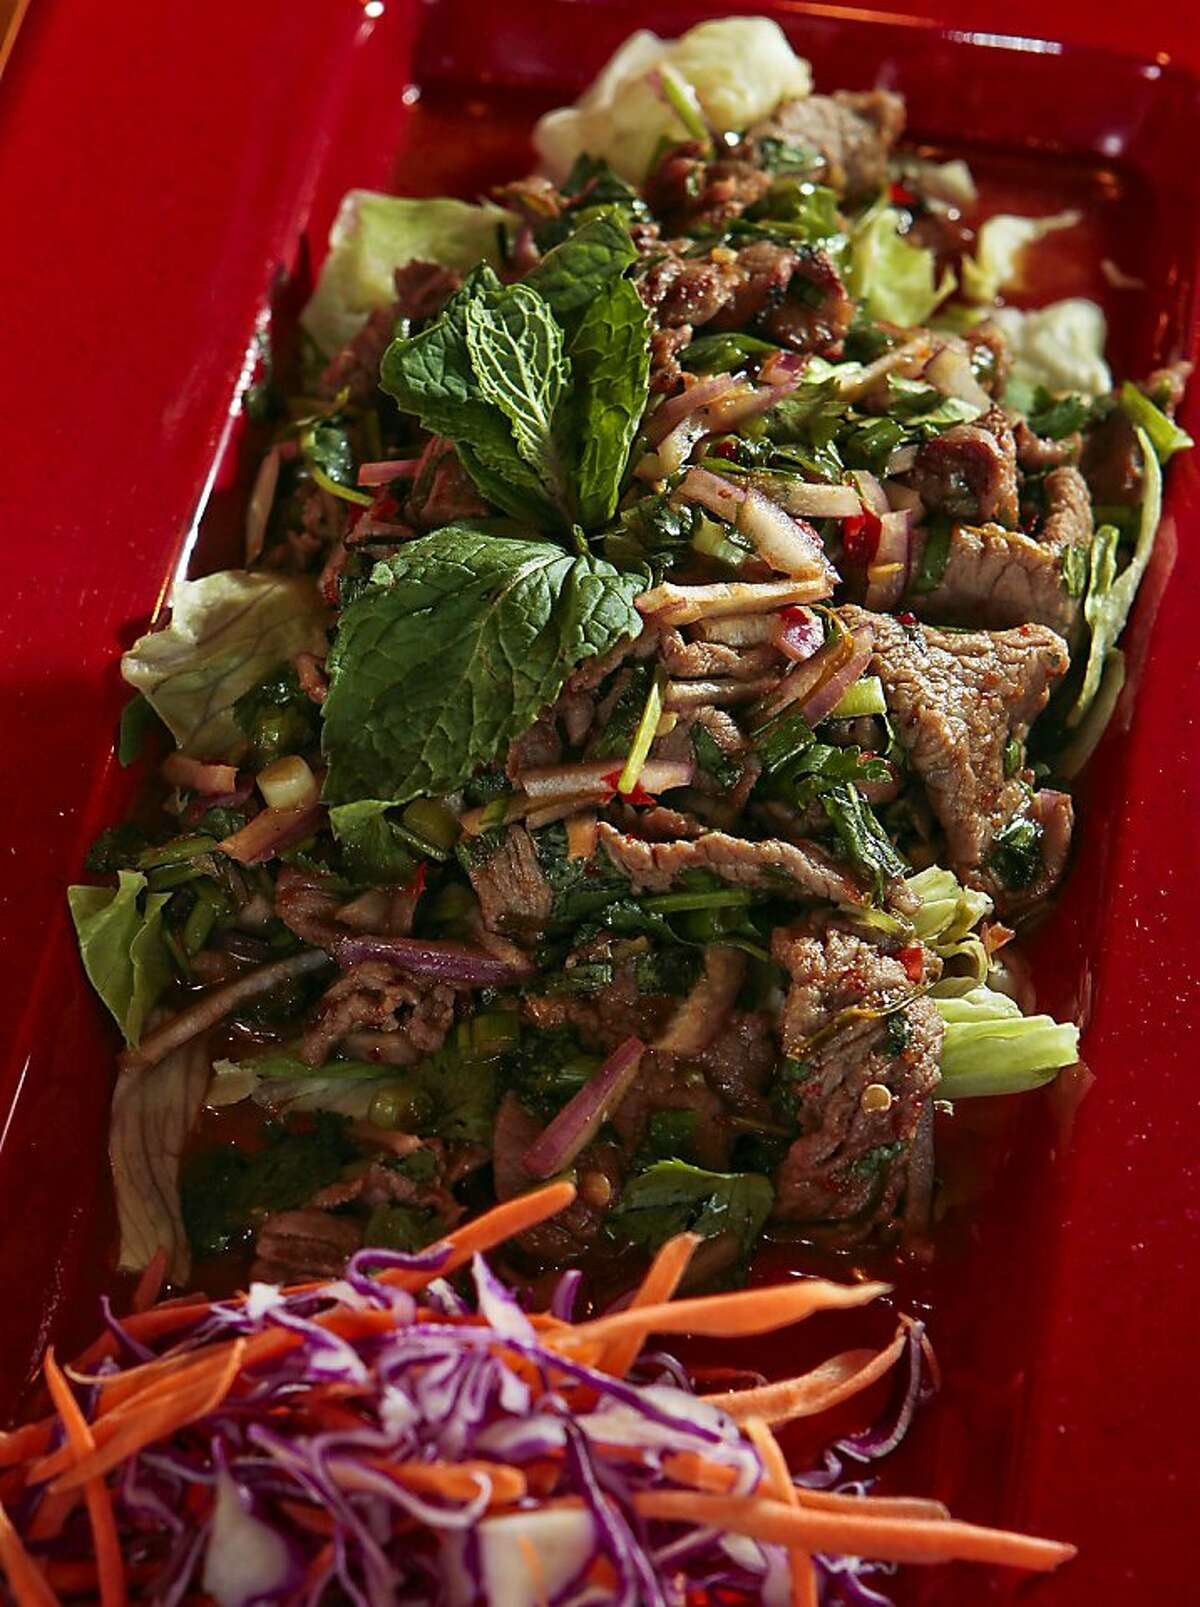 The Grilled Beef salad at Thaiger Thai Kitchen in San Mateo, Calif., is seen on Saturday, Nov. 27, 2010.